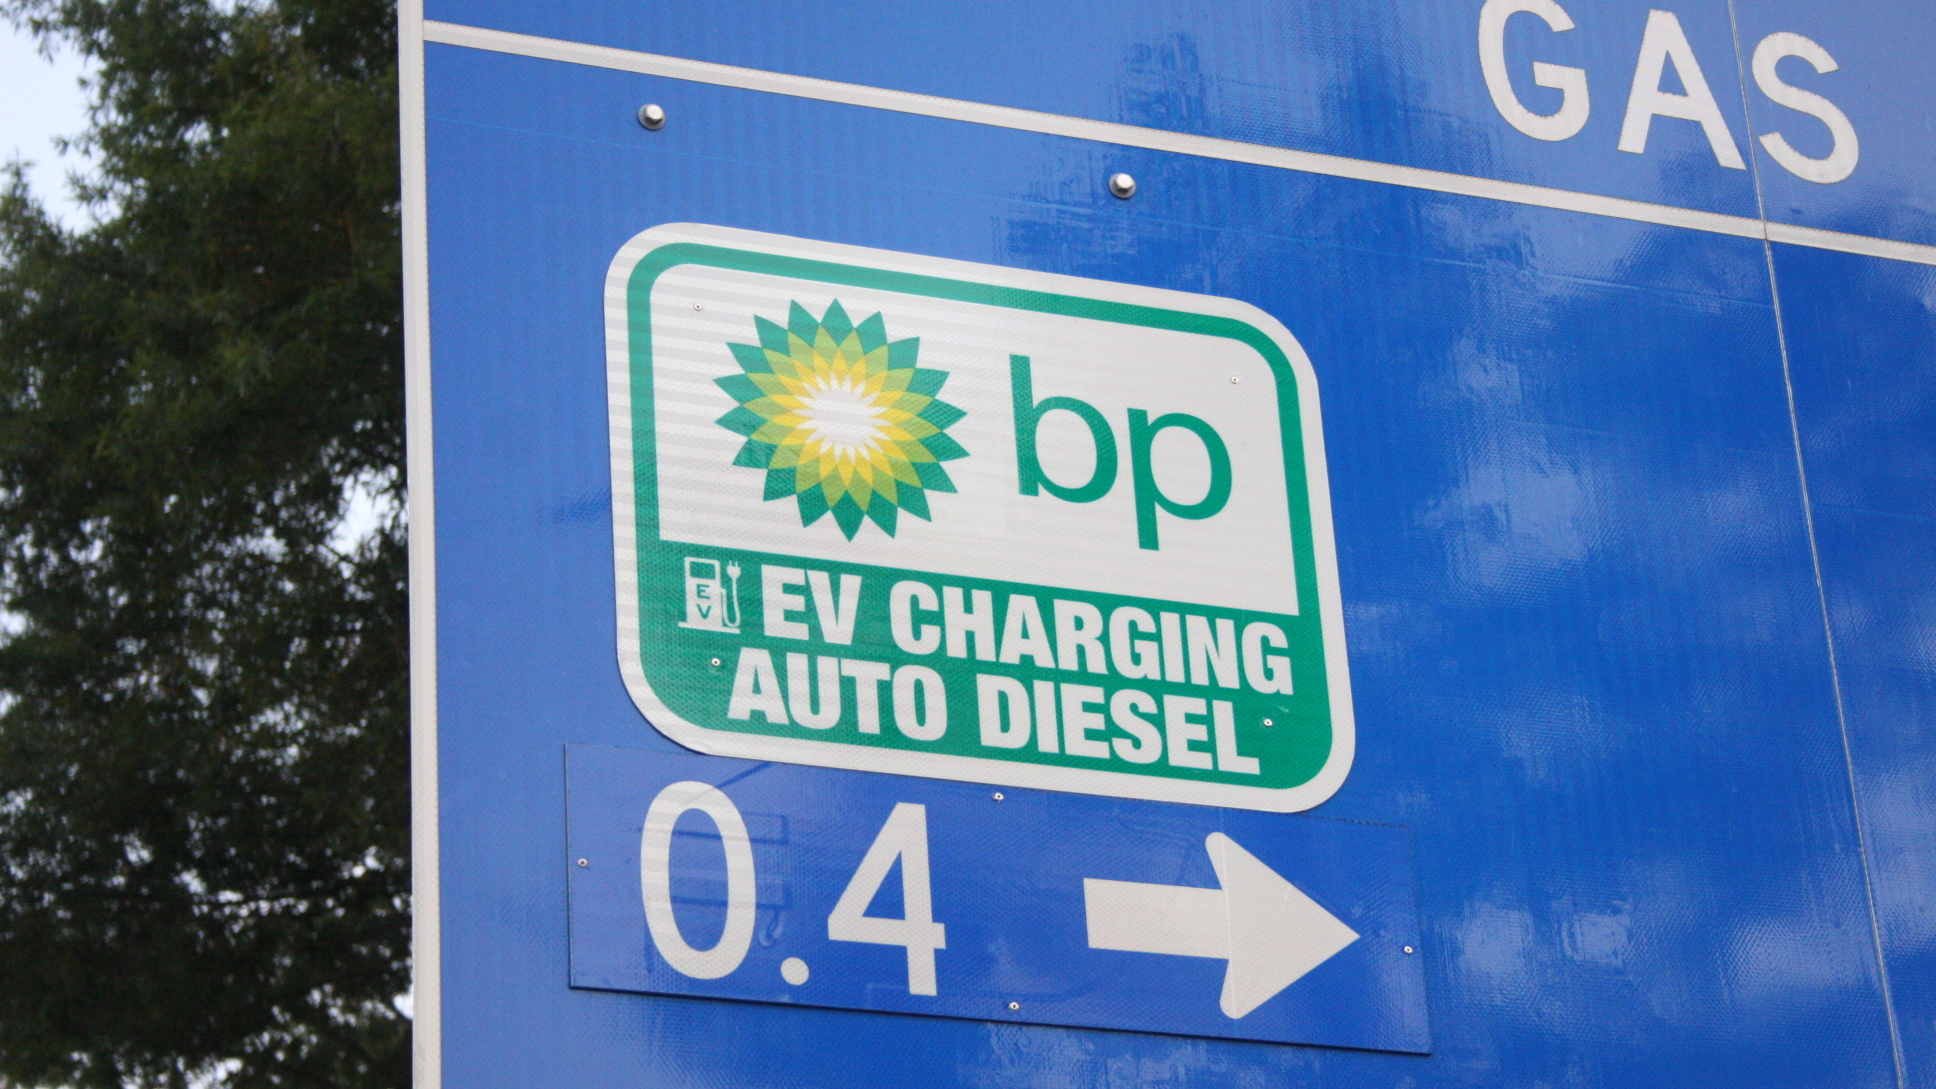 Highway sign for electric-car fast-charging station at BP in Metrolina area of Charlotte, NC